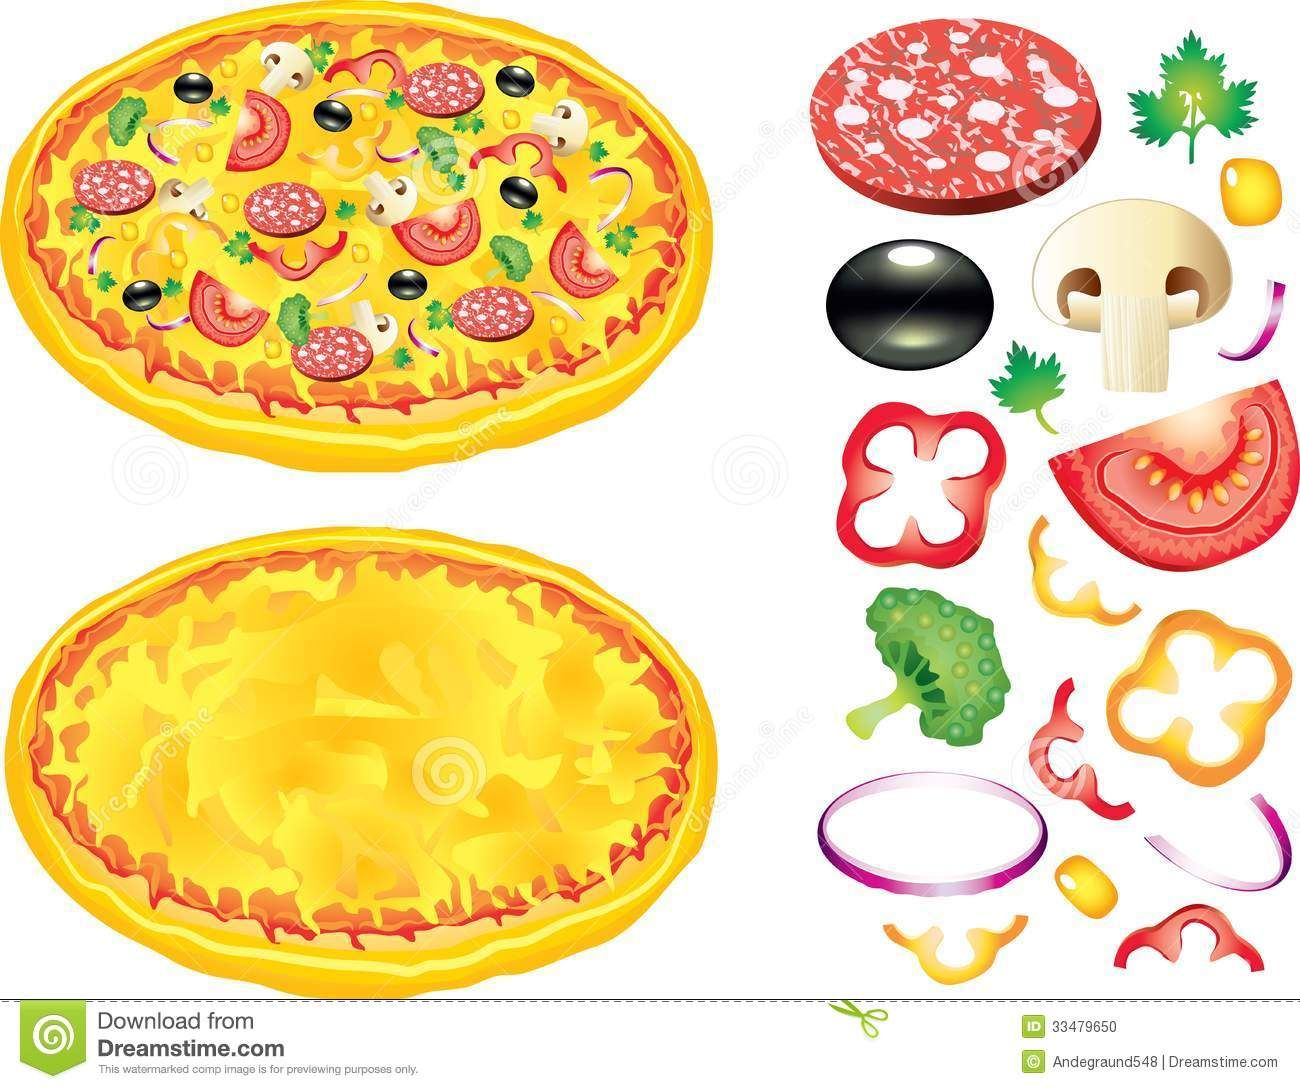 Kid making pizza clipart vector royalty free library Pizza Toppings Clip Art Free | Printables | Pizza, Pizza art ... vector royalty free library